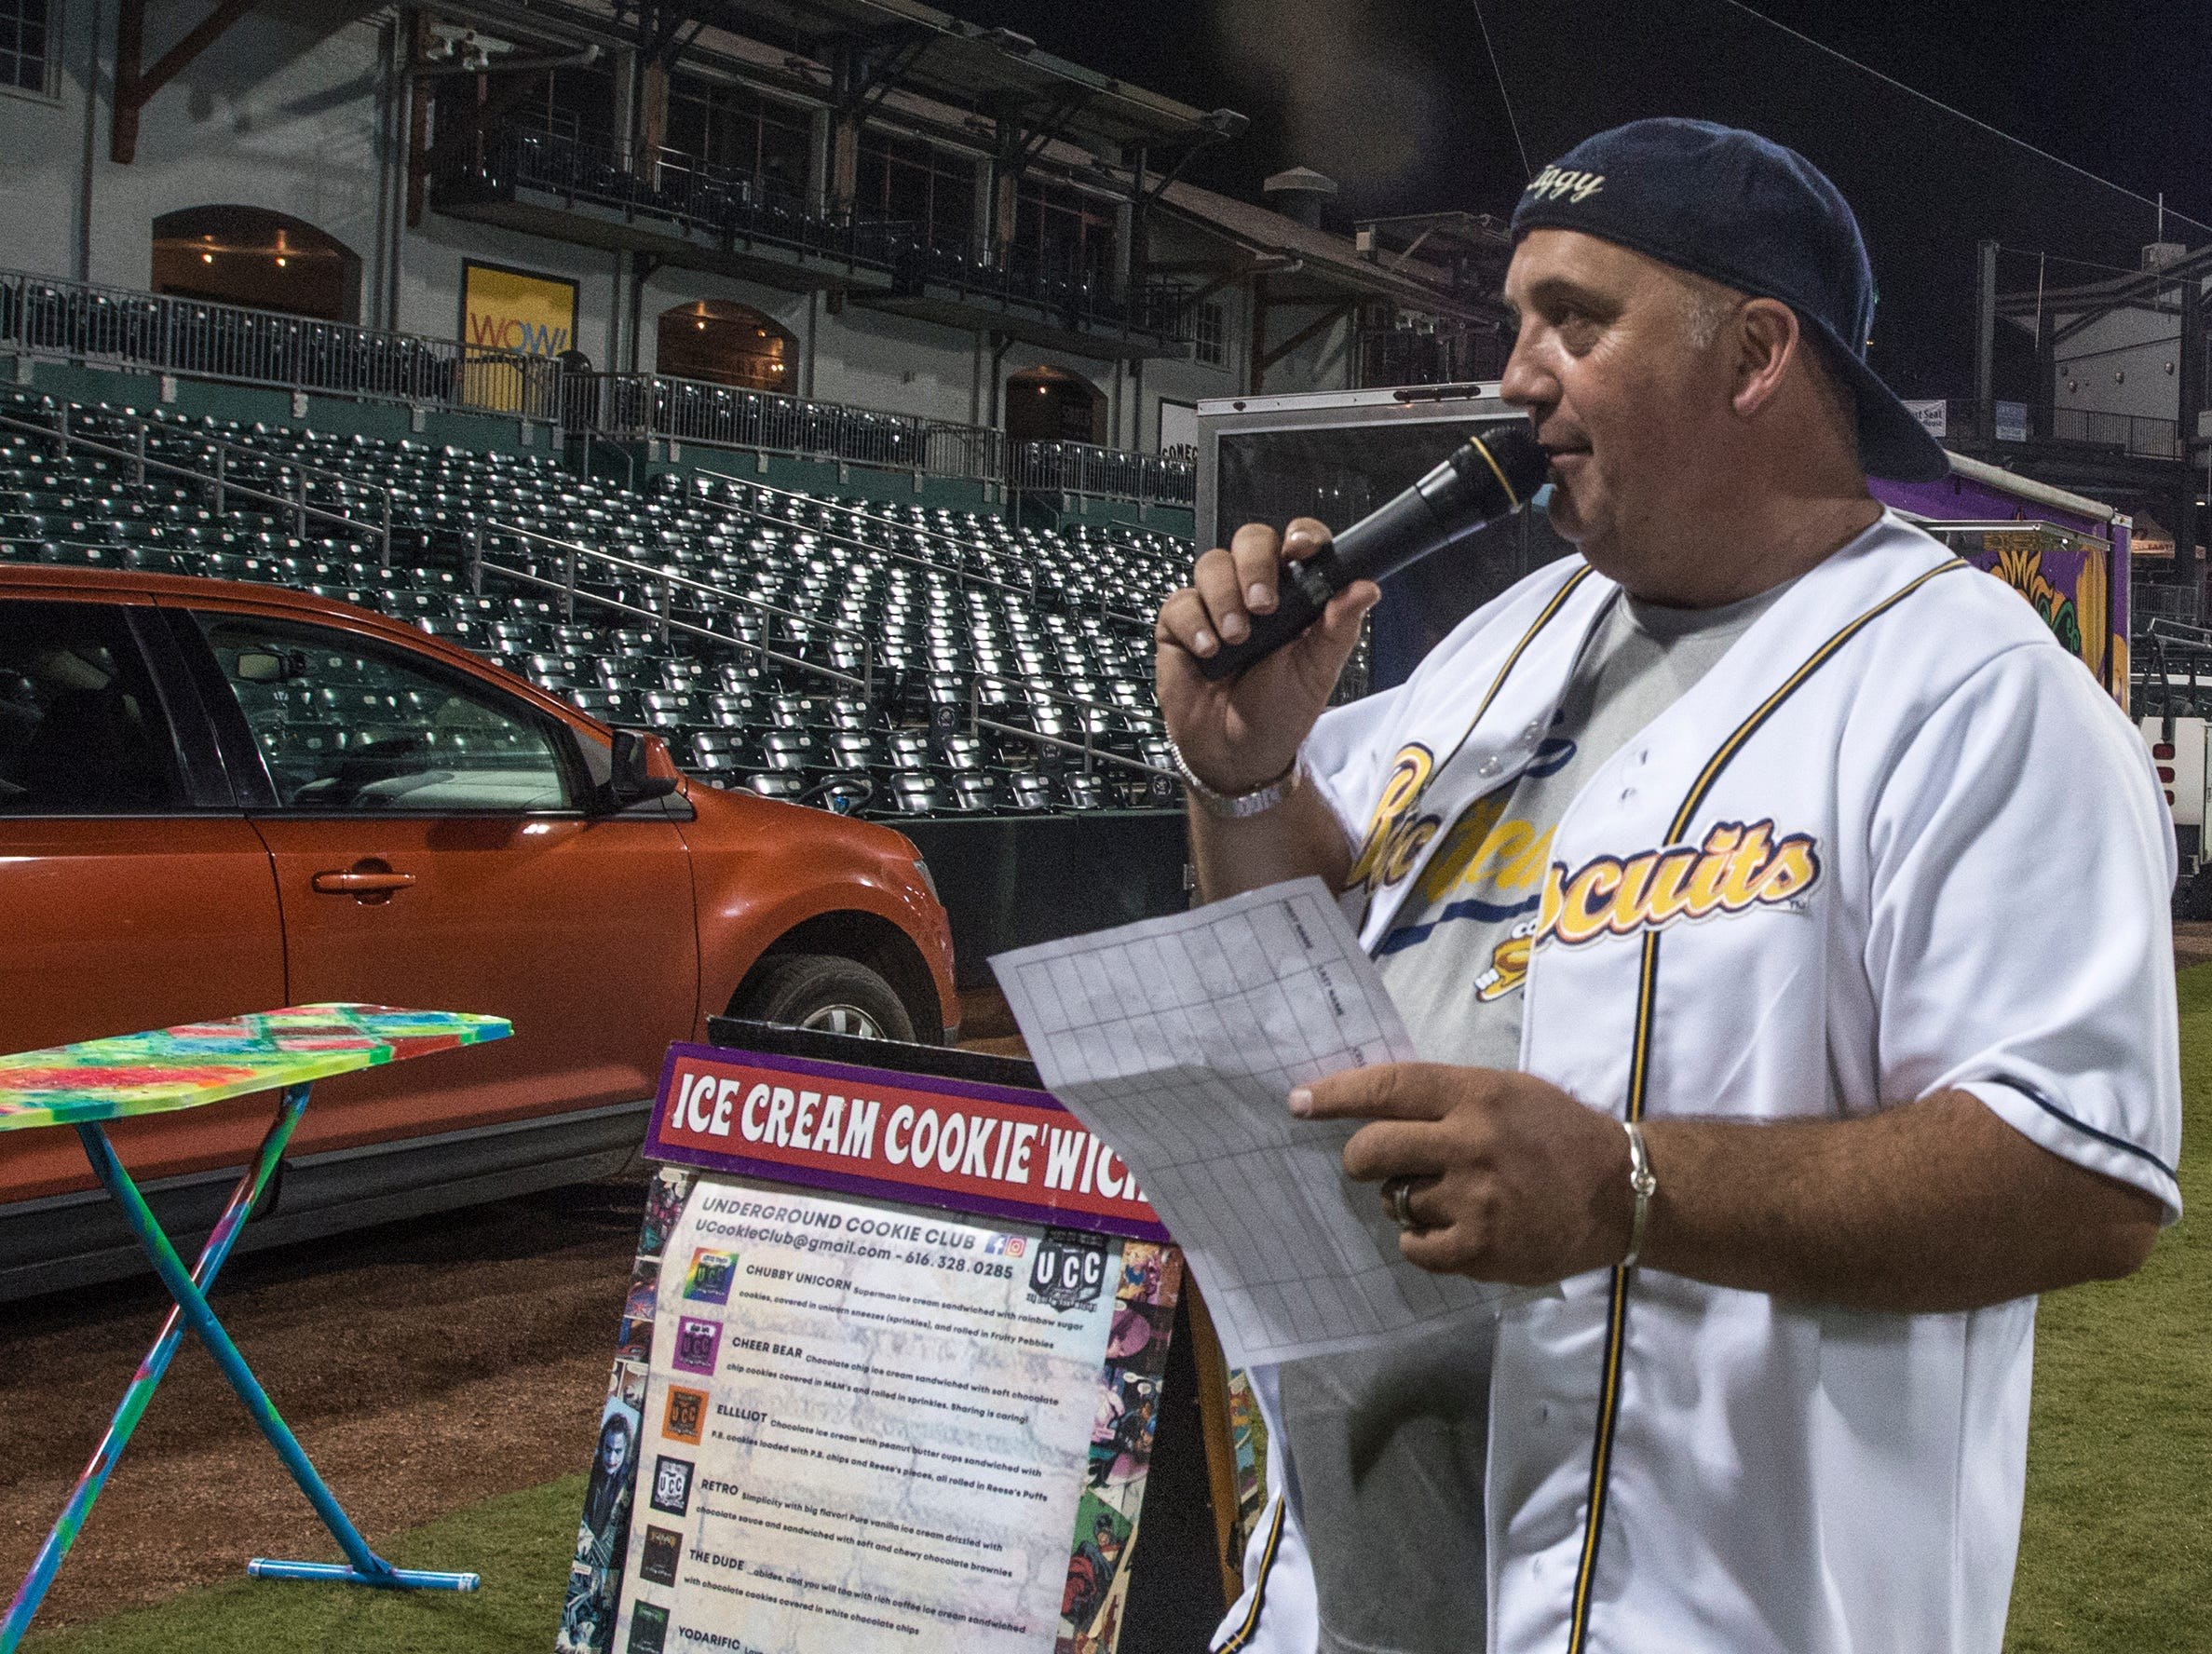 D.J. Ziggy makes an announcement. Food Truck Mash-Up returned to Riverwalk Stadium on Saturday, Oct. 20, 2018, bringing a variety of food trucks, music and games for guests to enjoy.